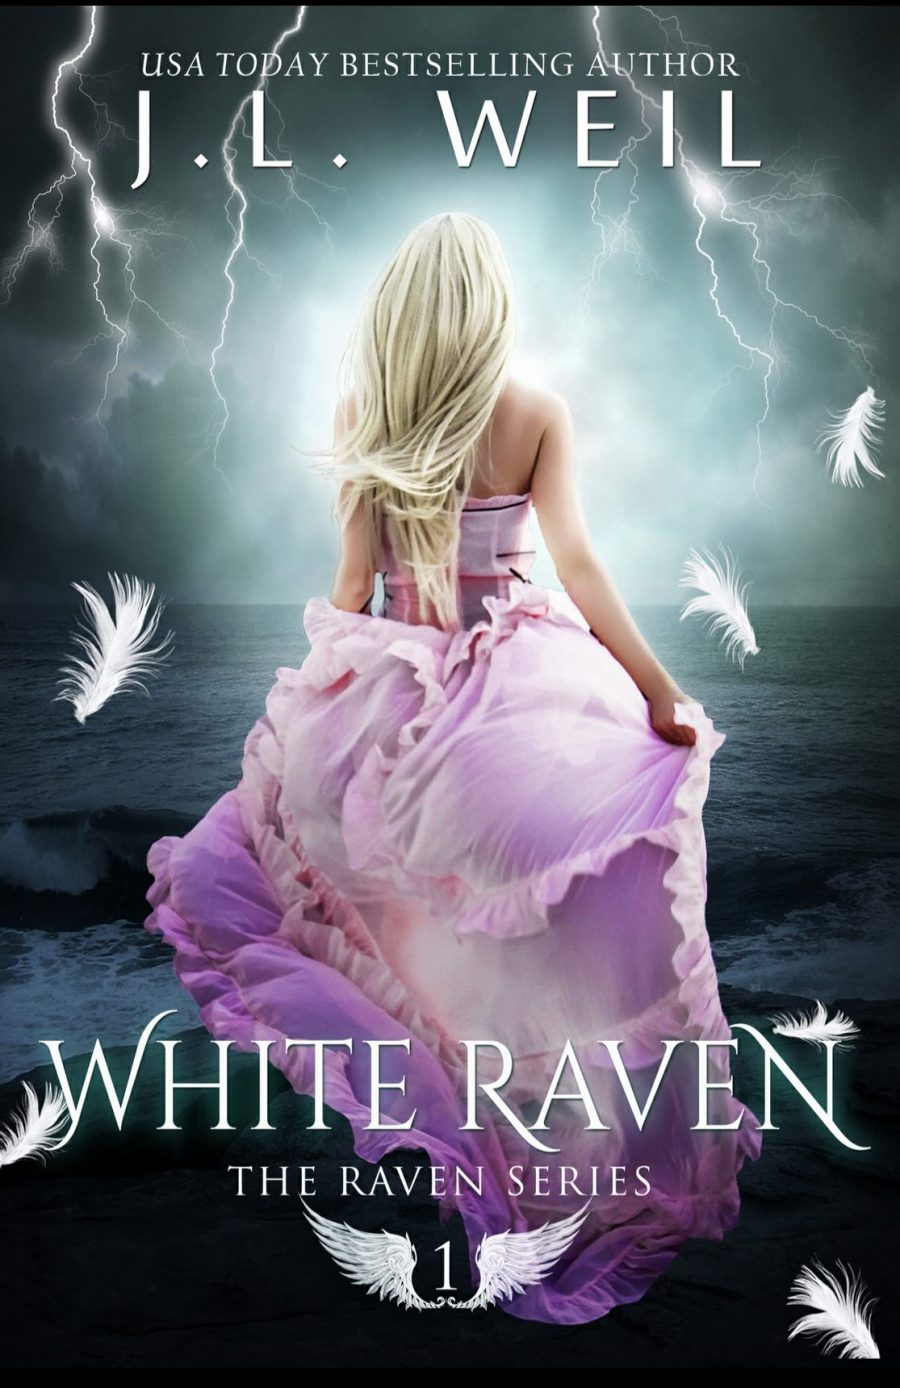 White Raven by J.L. Weil – A Book Review